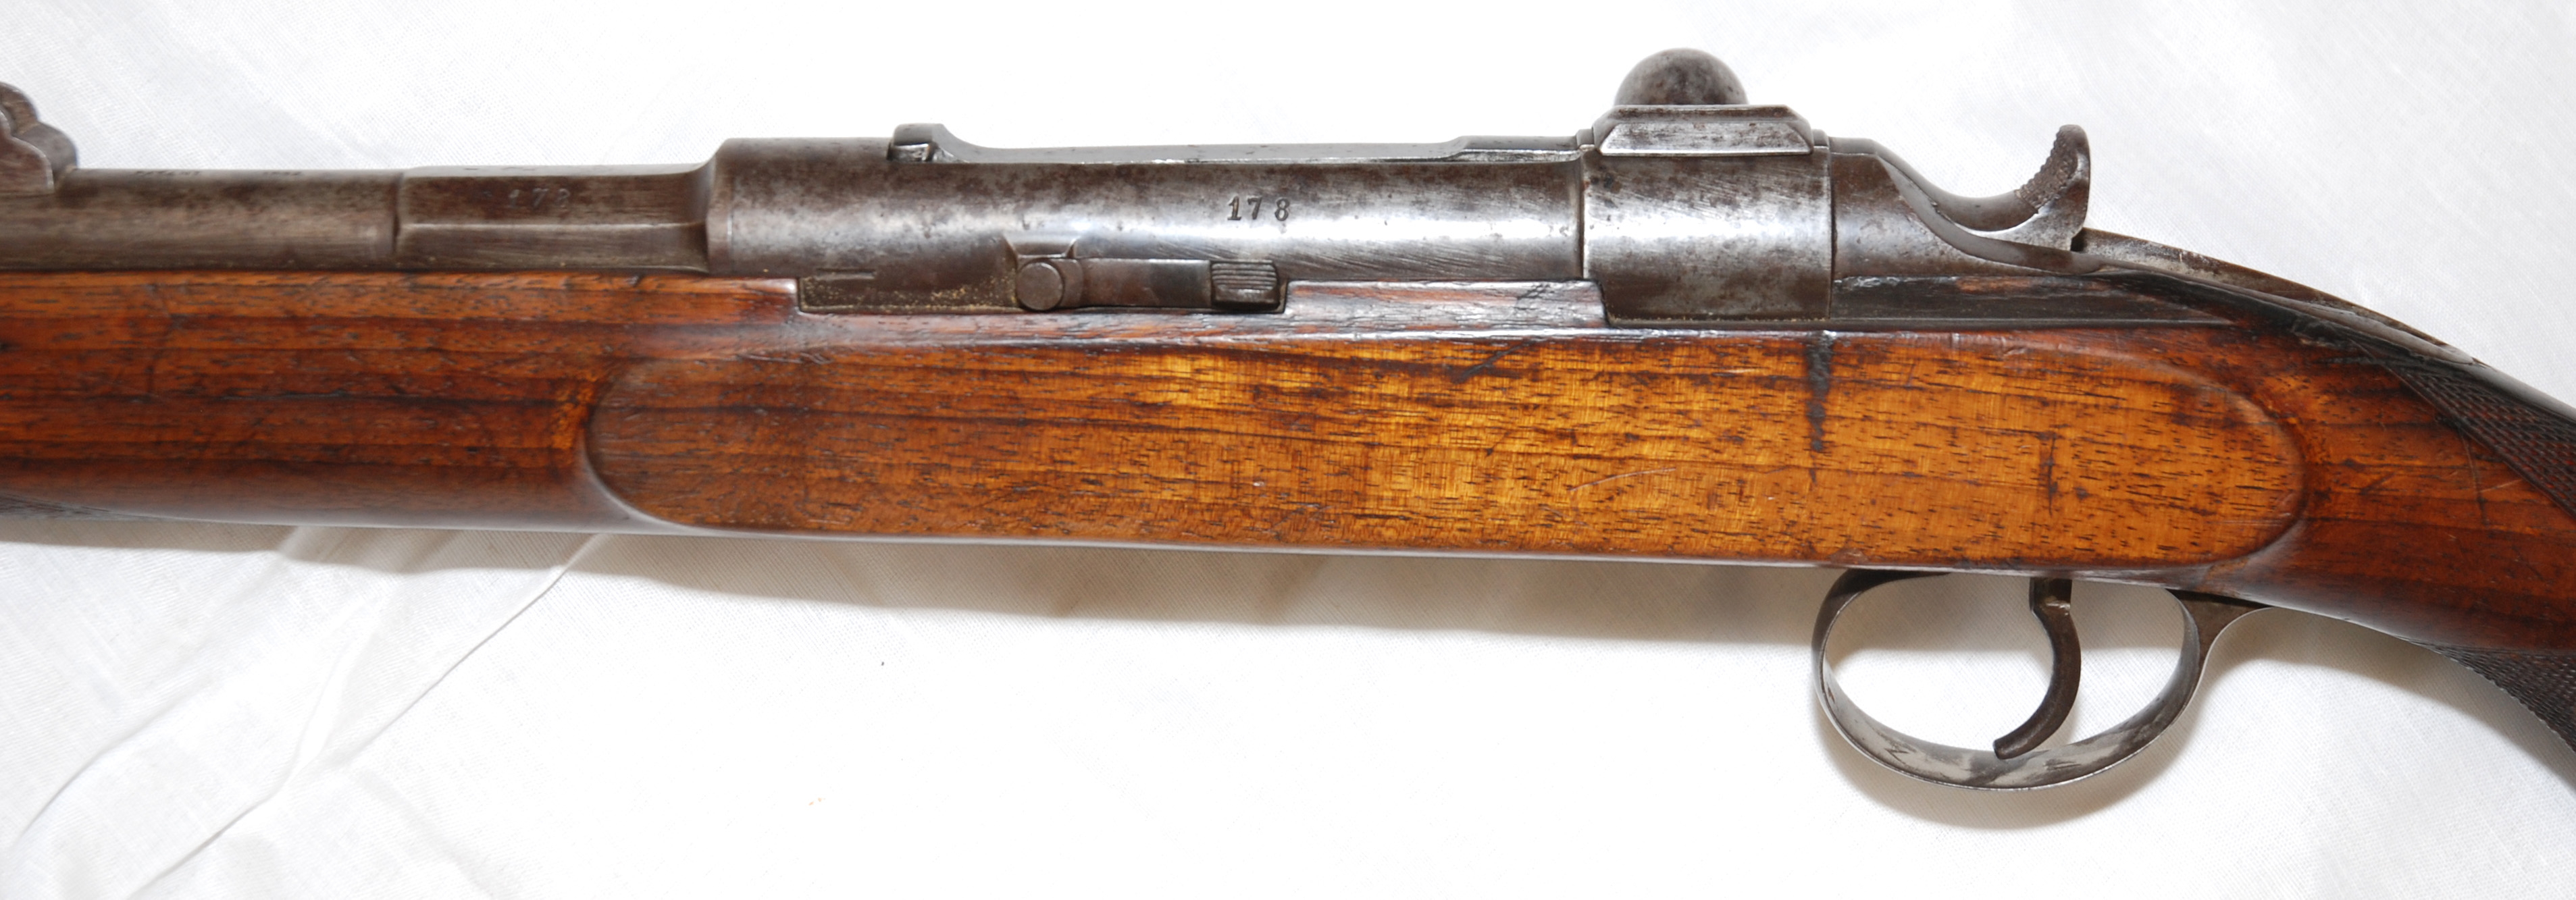 ./guns/rifle/bilder/Rifle-Kongsberg-Jarmann-M1884-Sivil-178-3.jpg